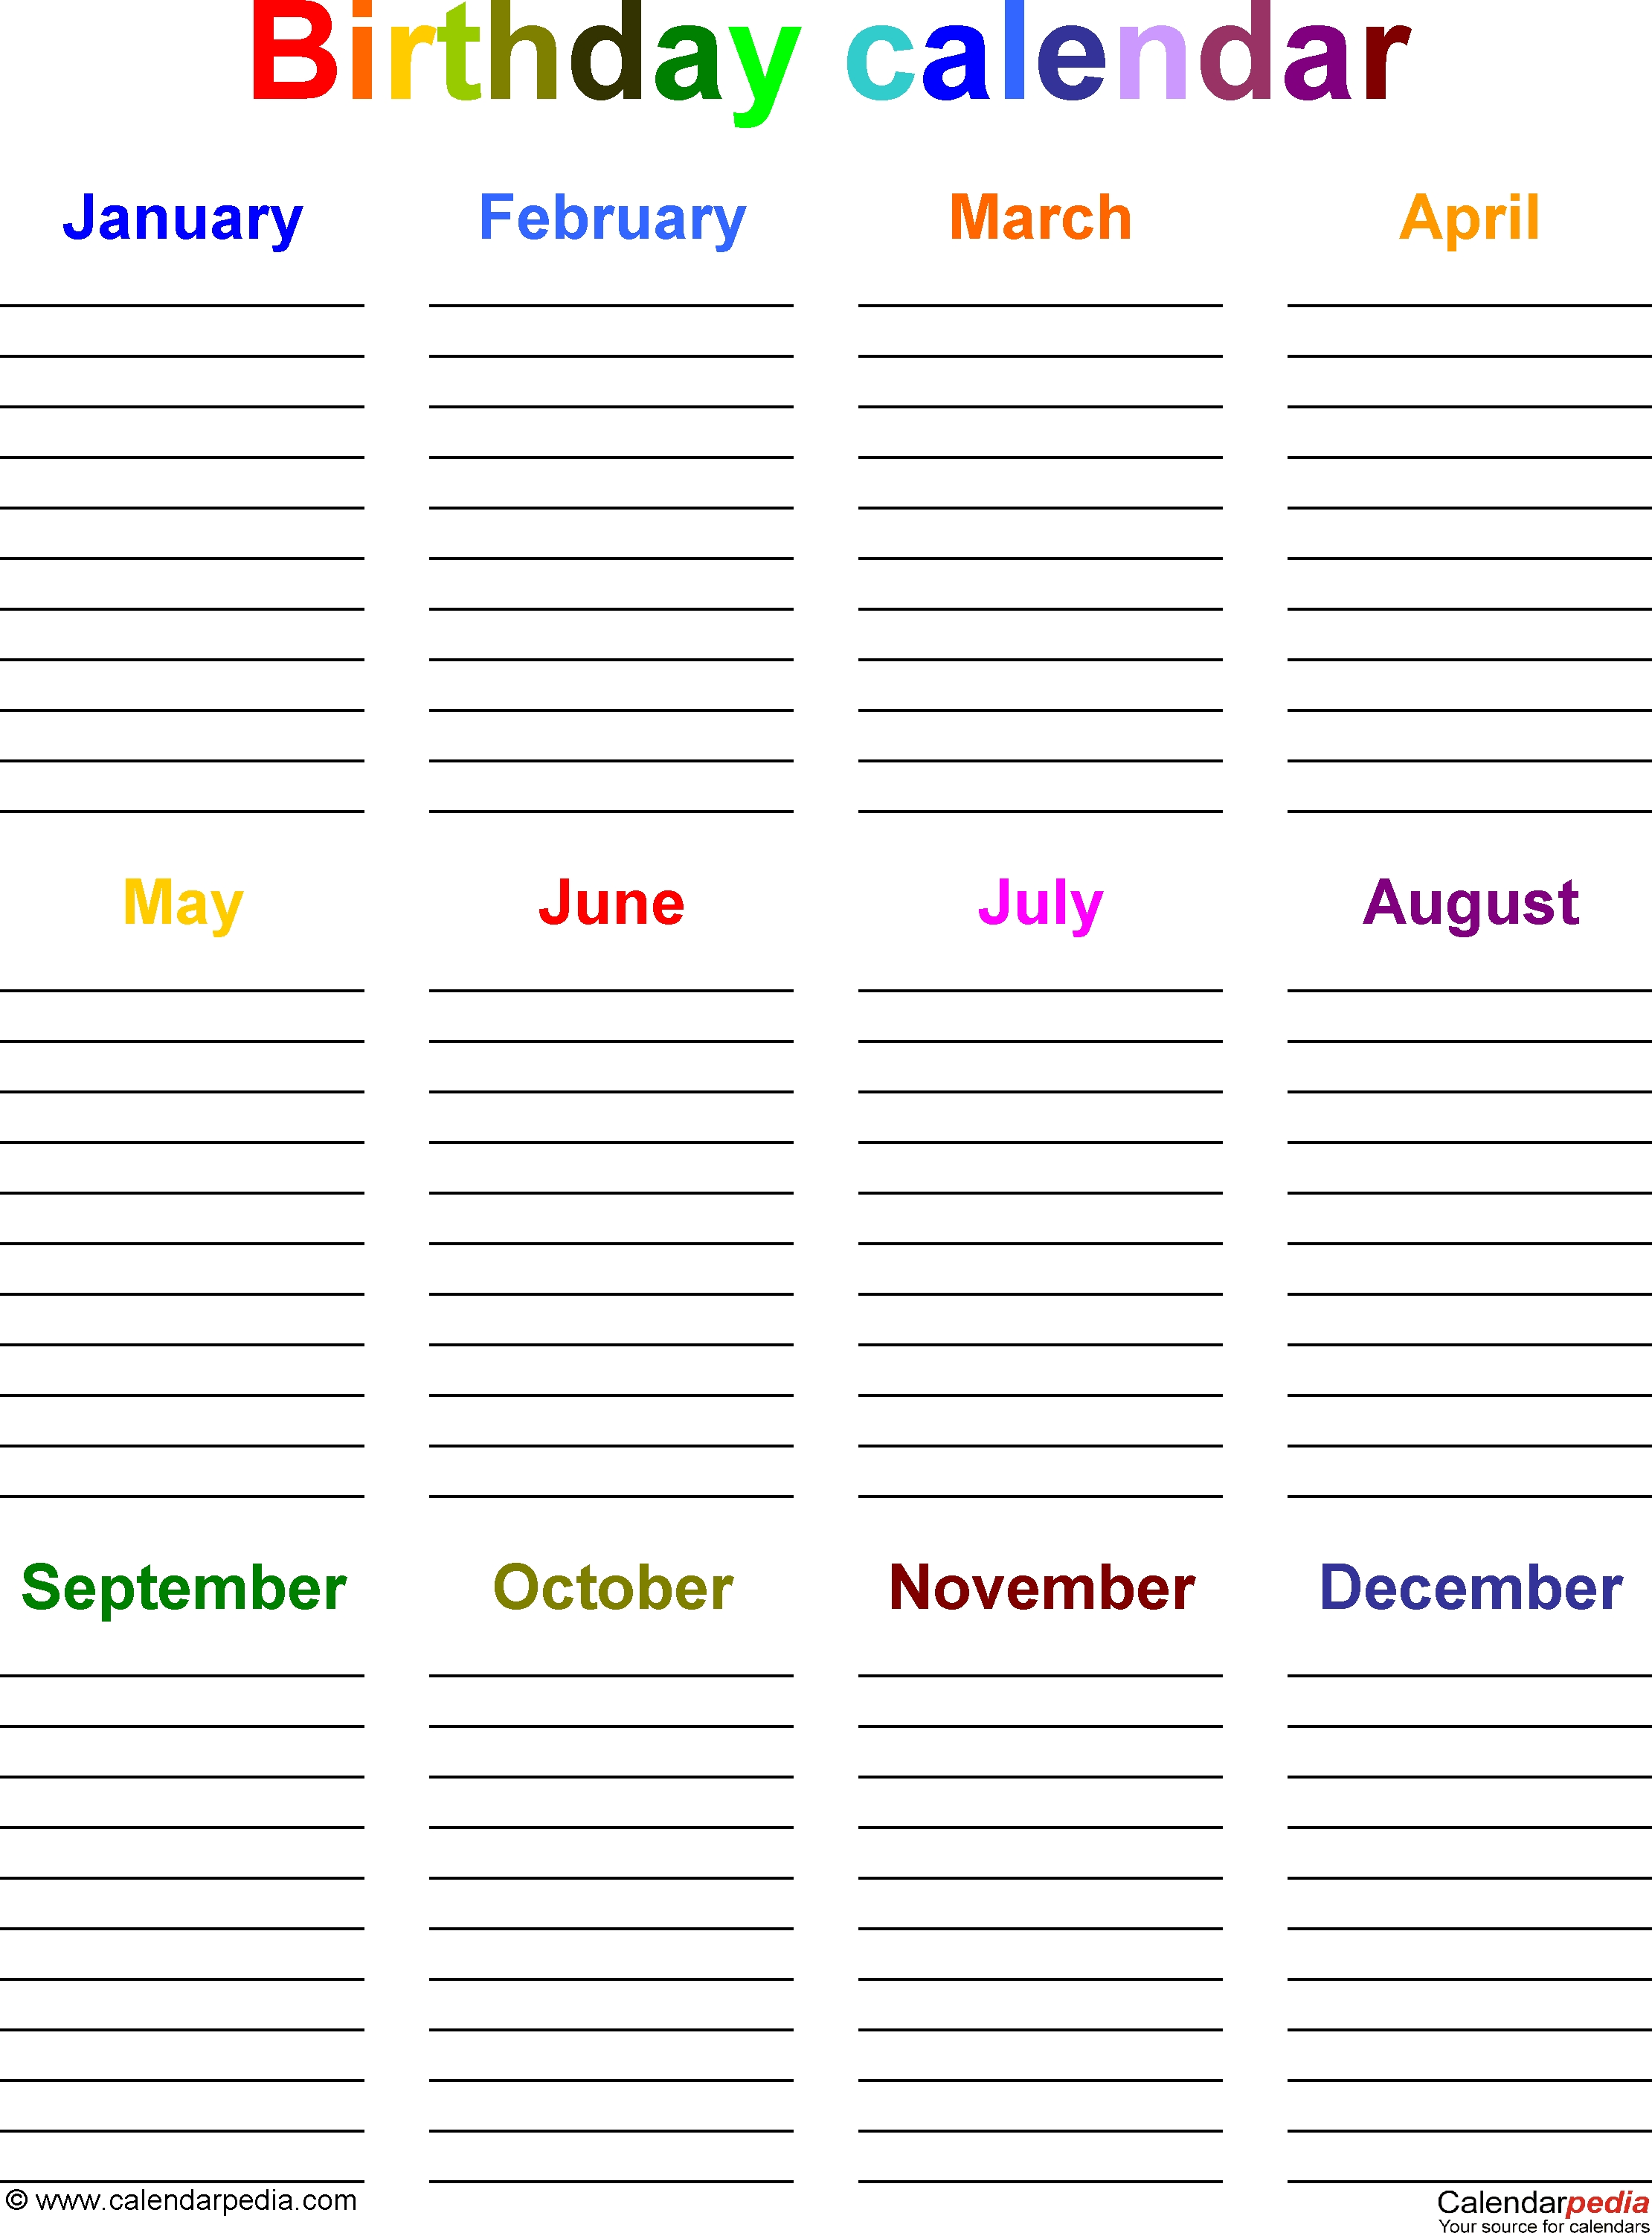 Template 5: Pdf Template For Birthday Calendar In Color